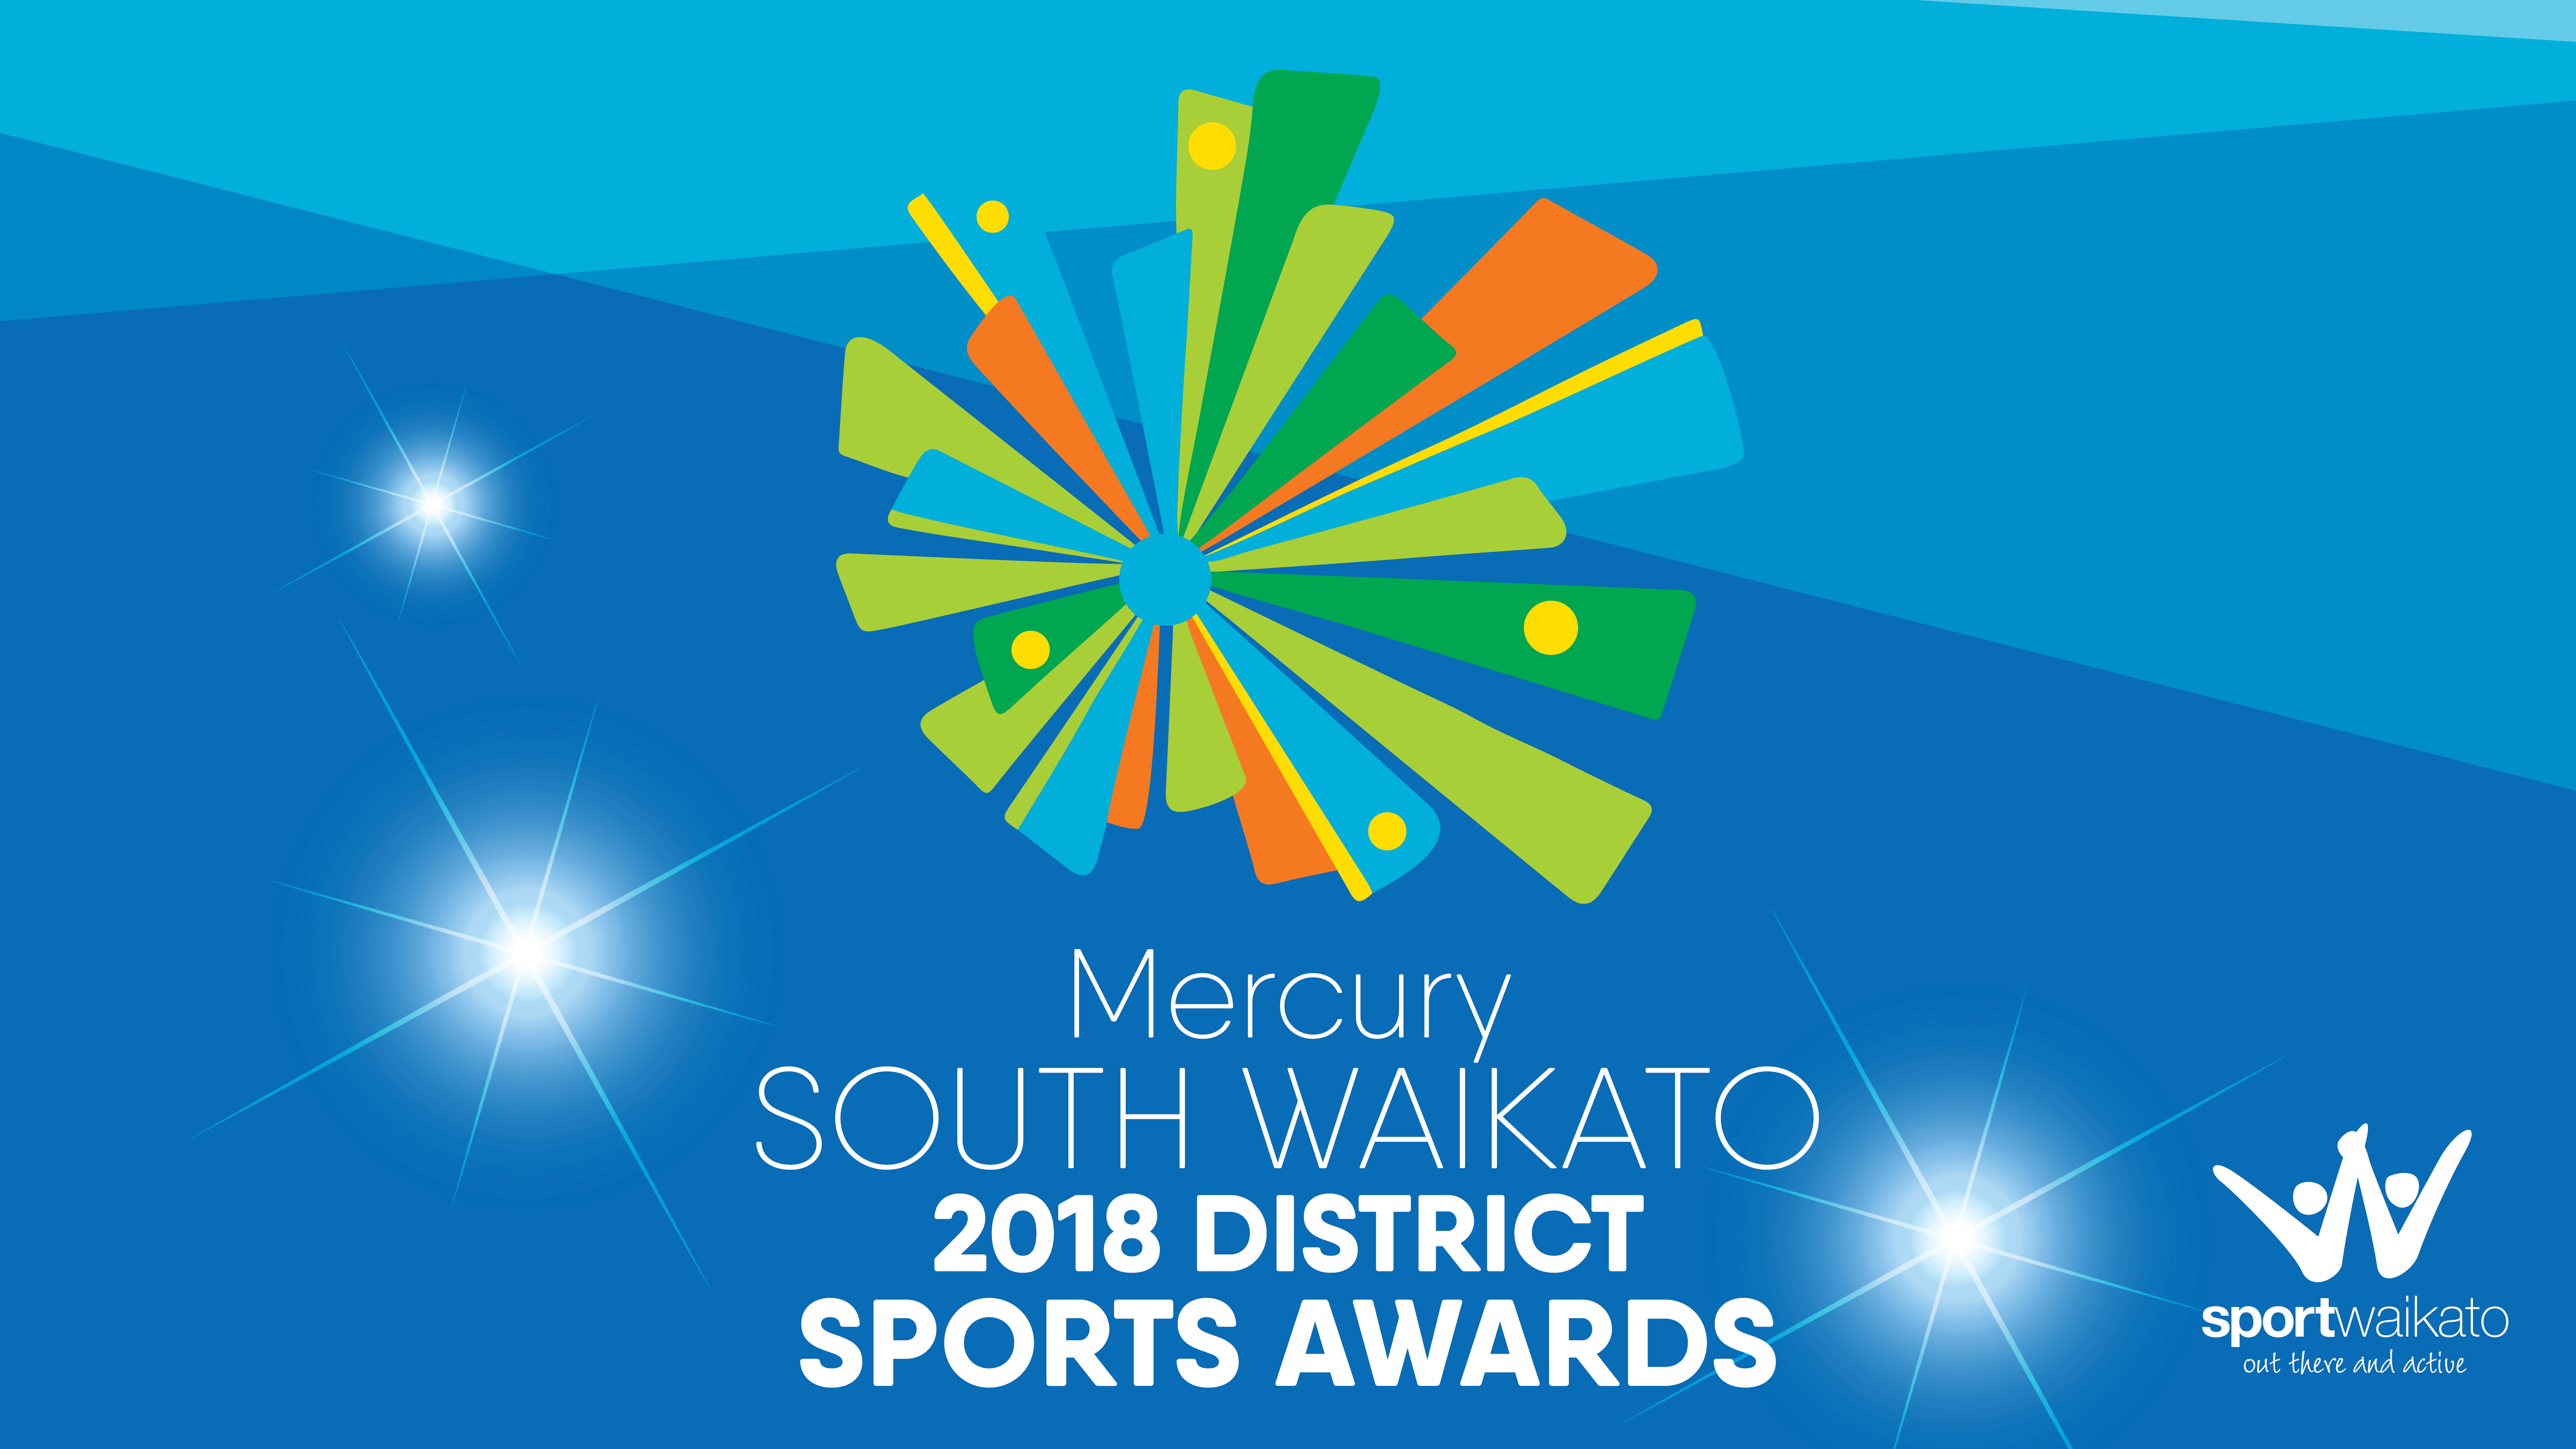 2018 Mercury South Waikato District Sports Awards nominees announced!